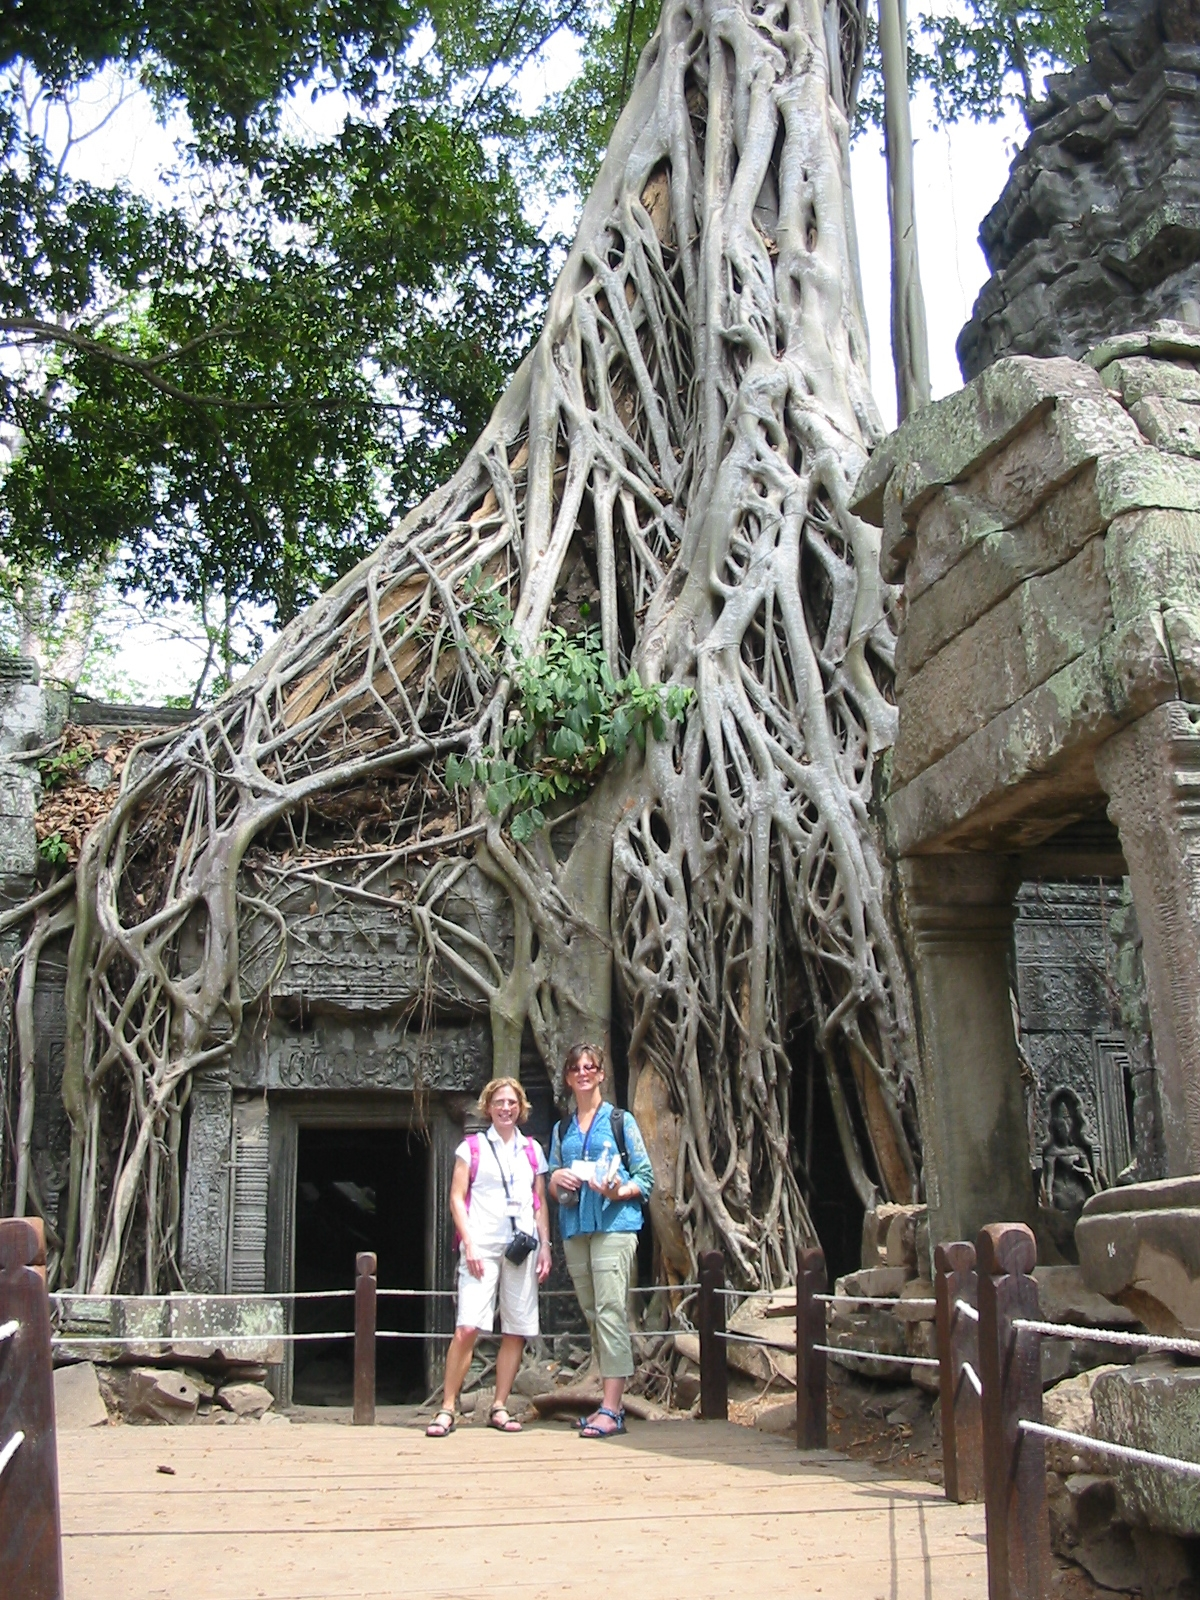 The famous Ta Prohm Temple at Angkor Wat.